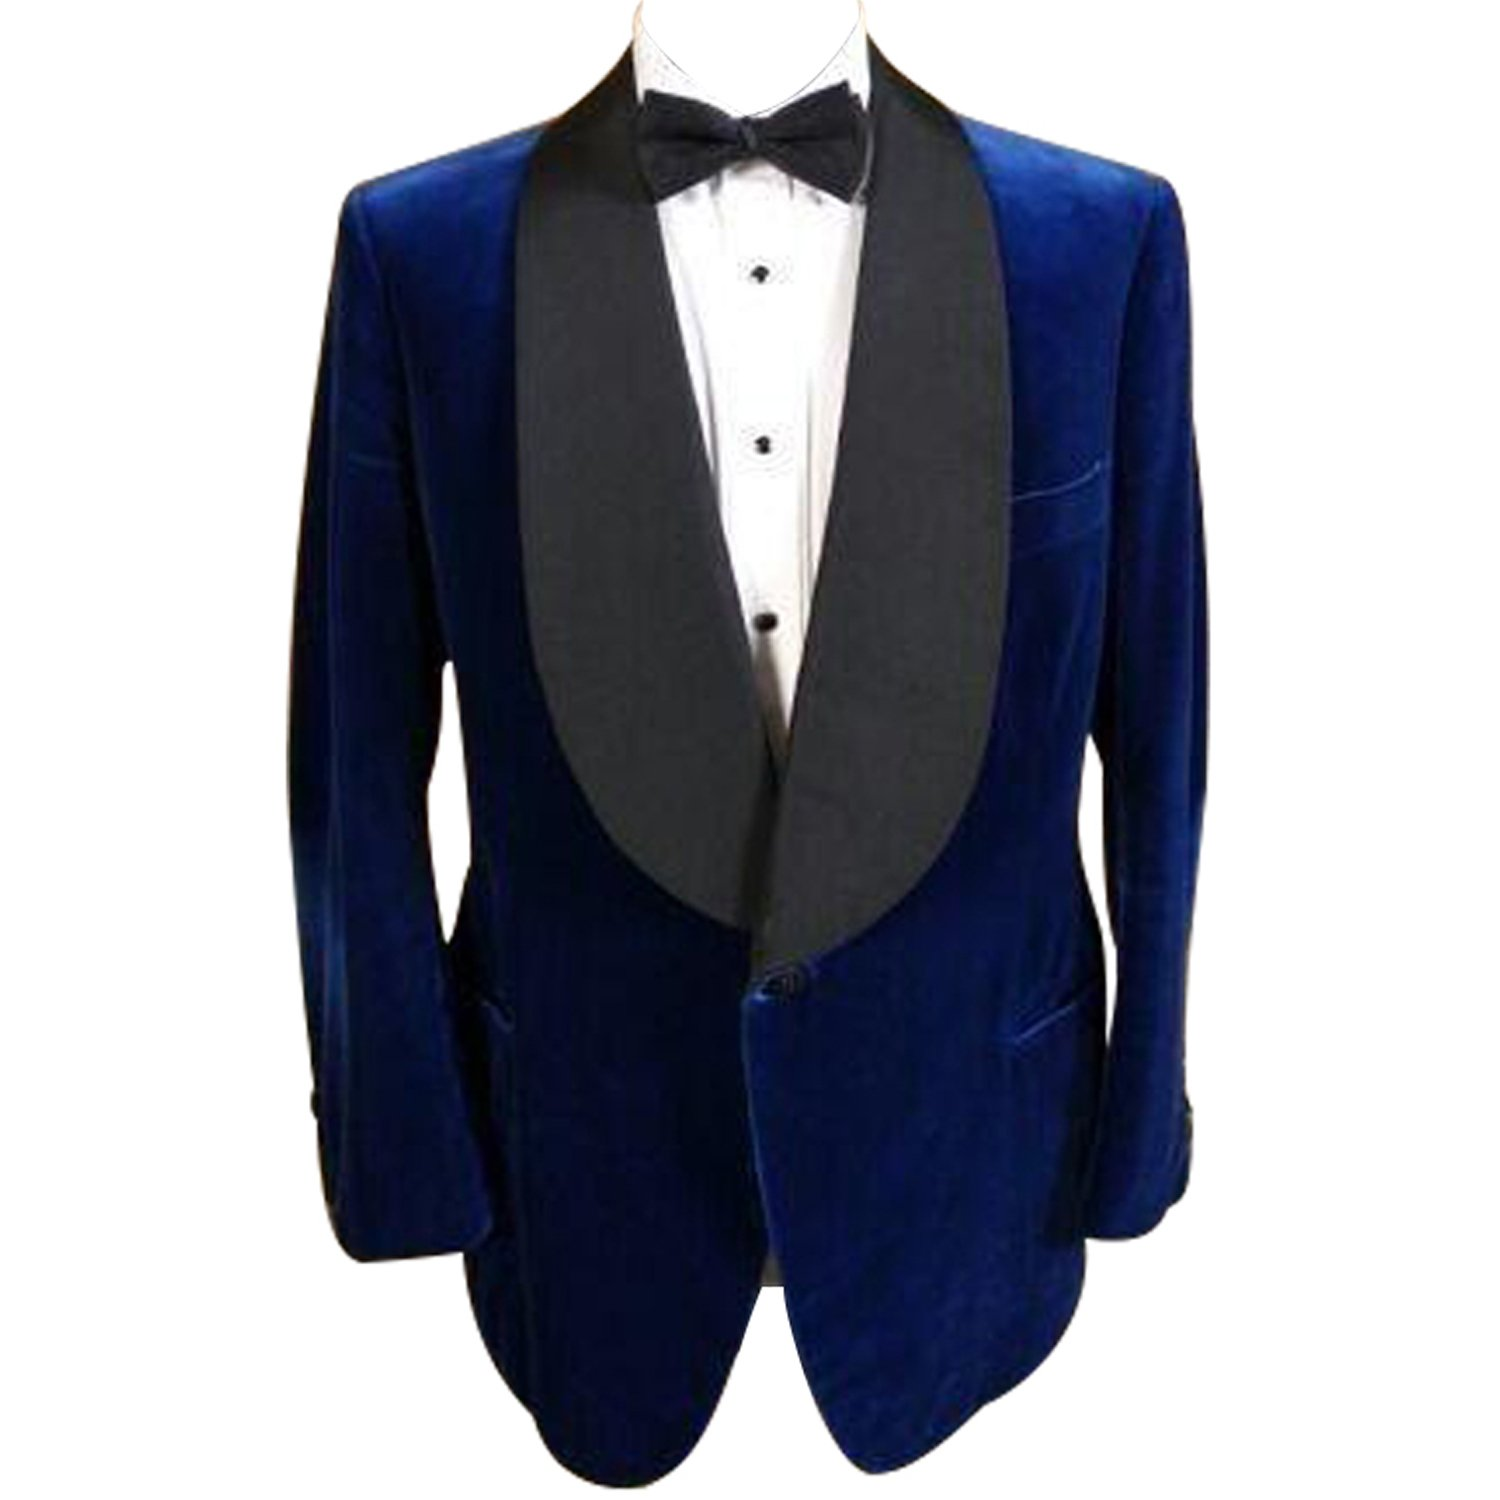 HBDesign Mens 1 Piece 1 Button Shawl Lapel Slim Fit Royal Blue Suit Jacket